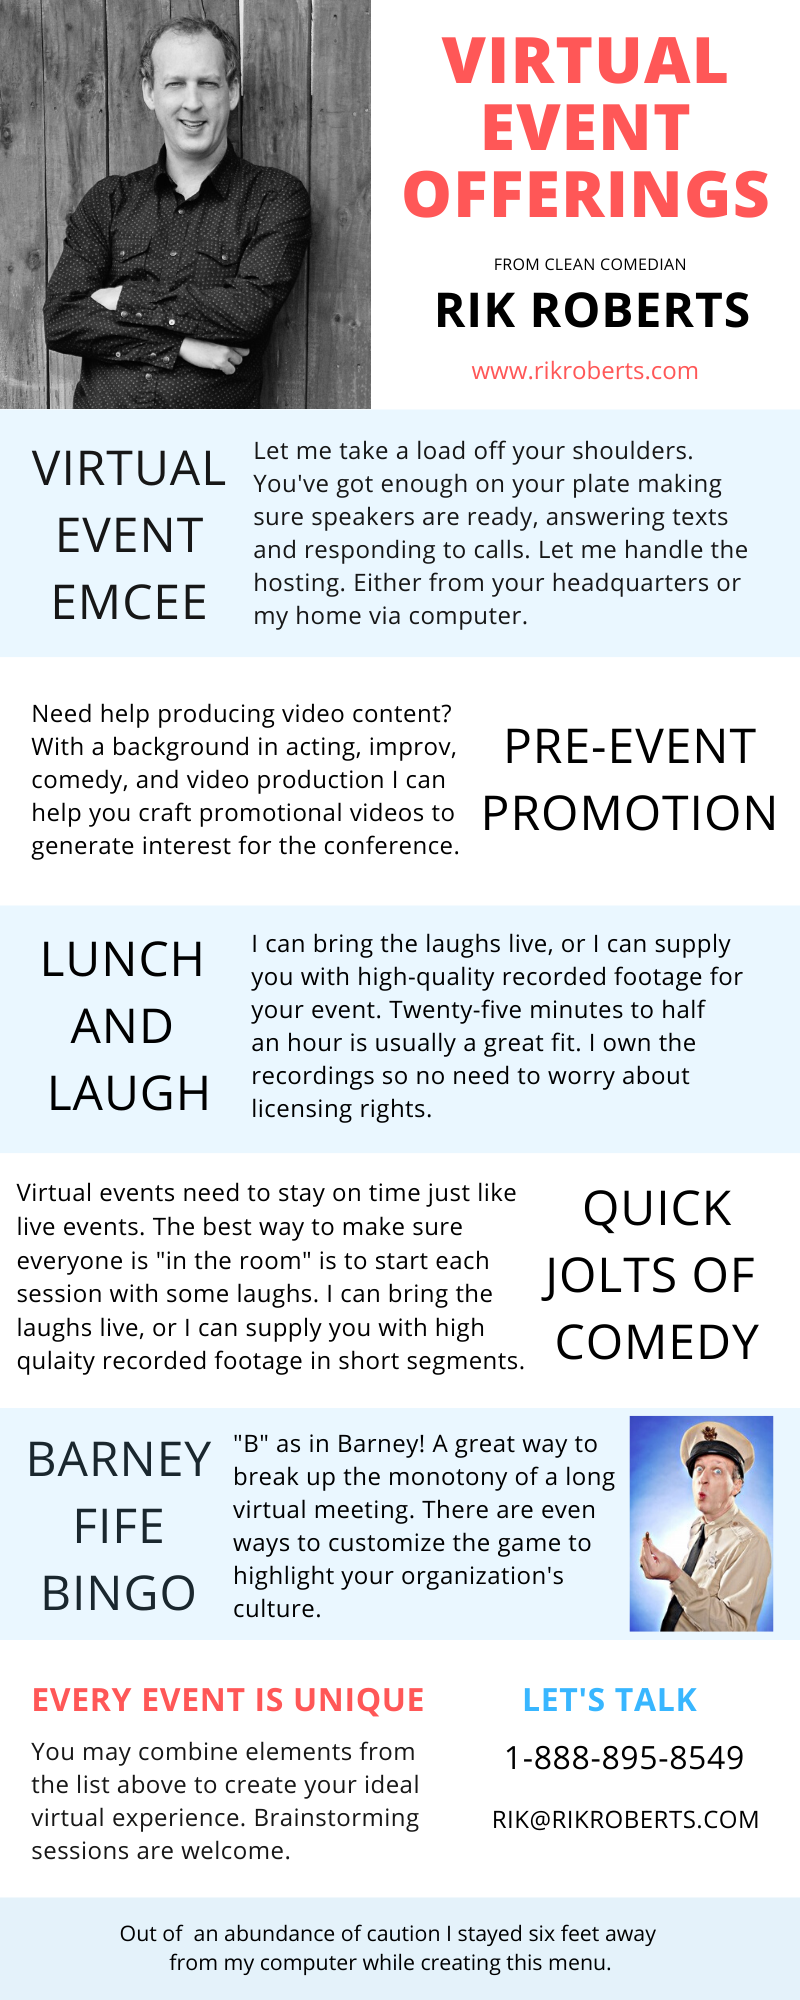 Virtual Event Solutions from Clean Comedian Rik Roberts